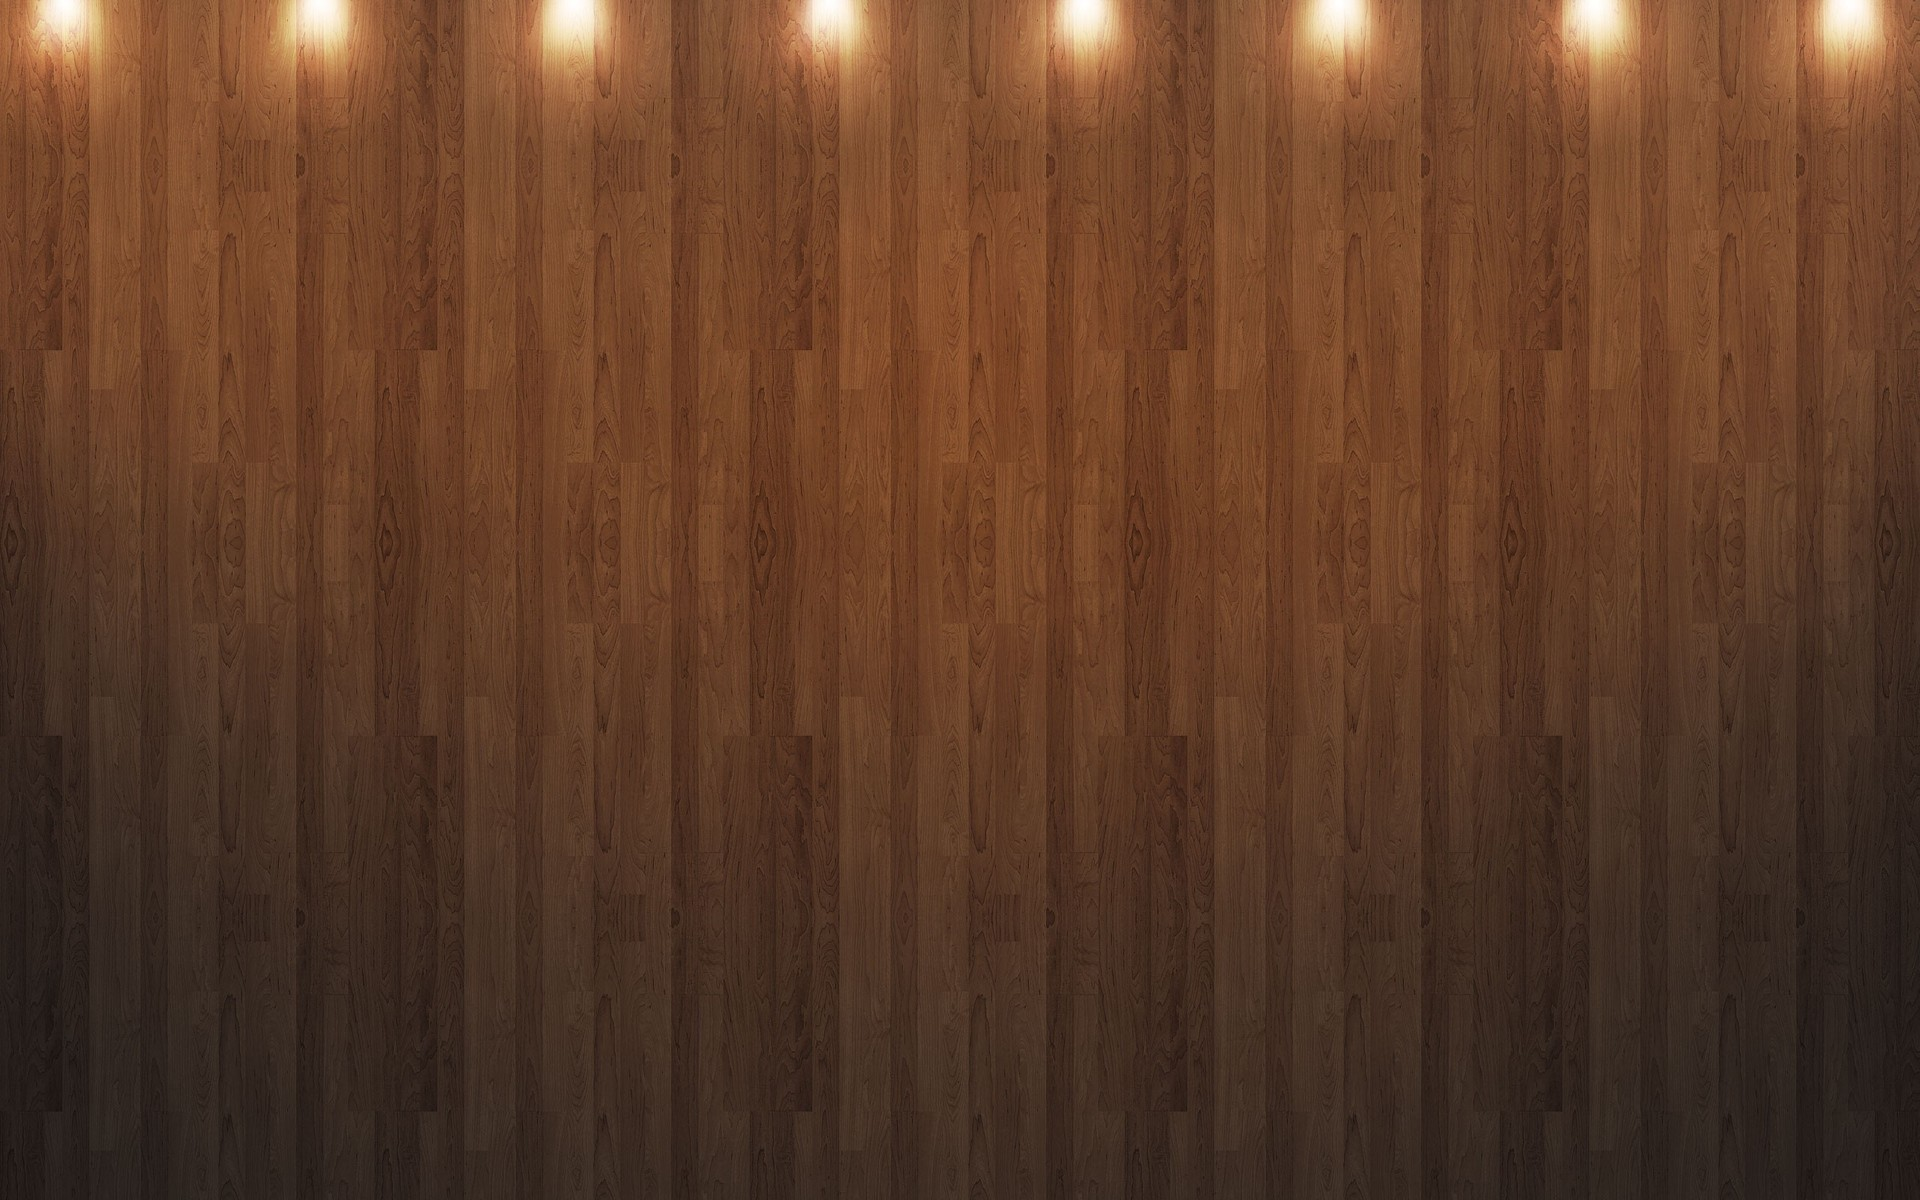 light wood floor background. 1920x1200 Wood floor with lights Wallpaper  5312 Light background Download free cool full HD wallpapers